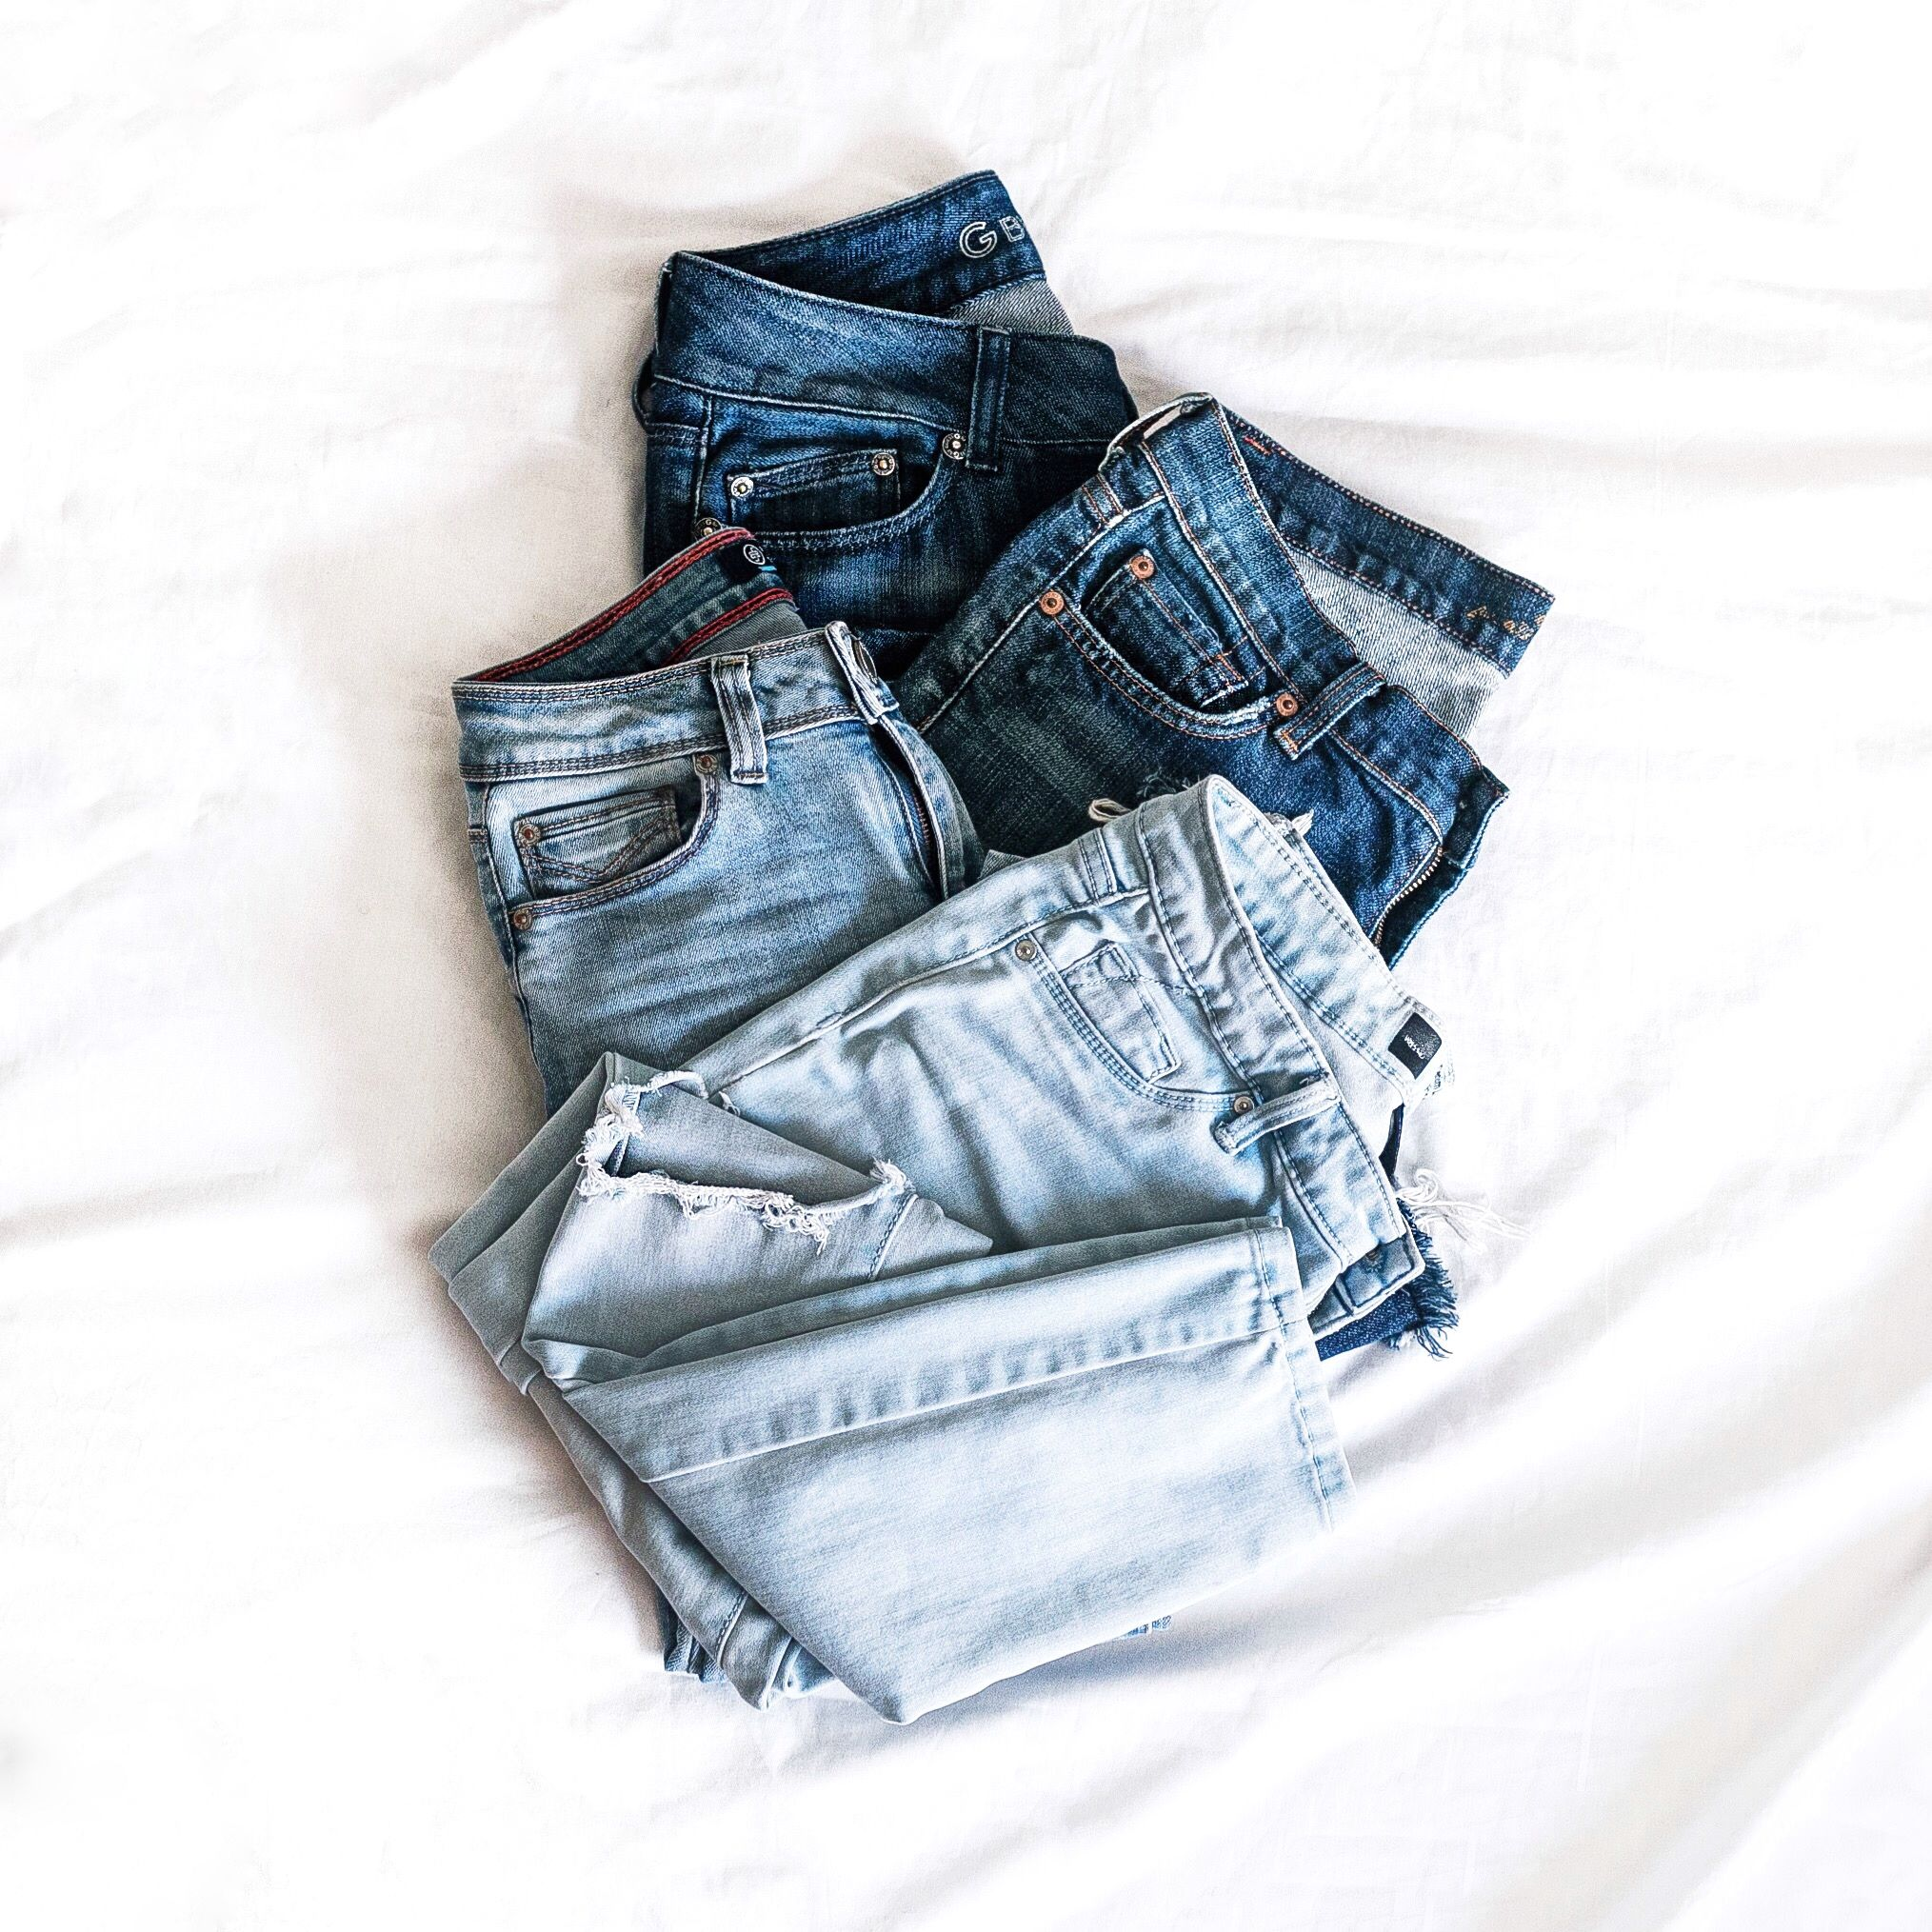 Image result for denim flat lay""